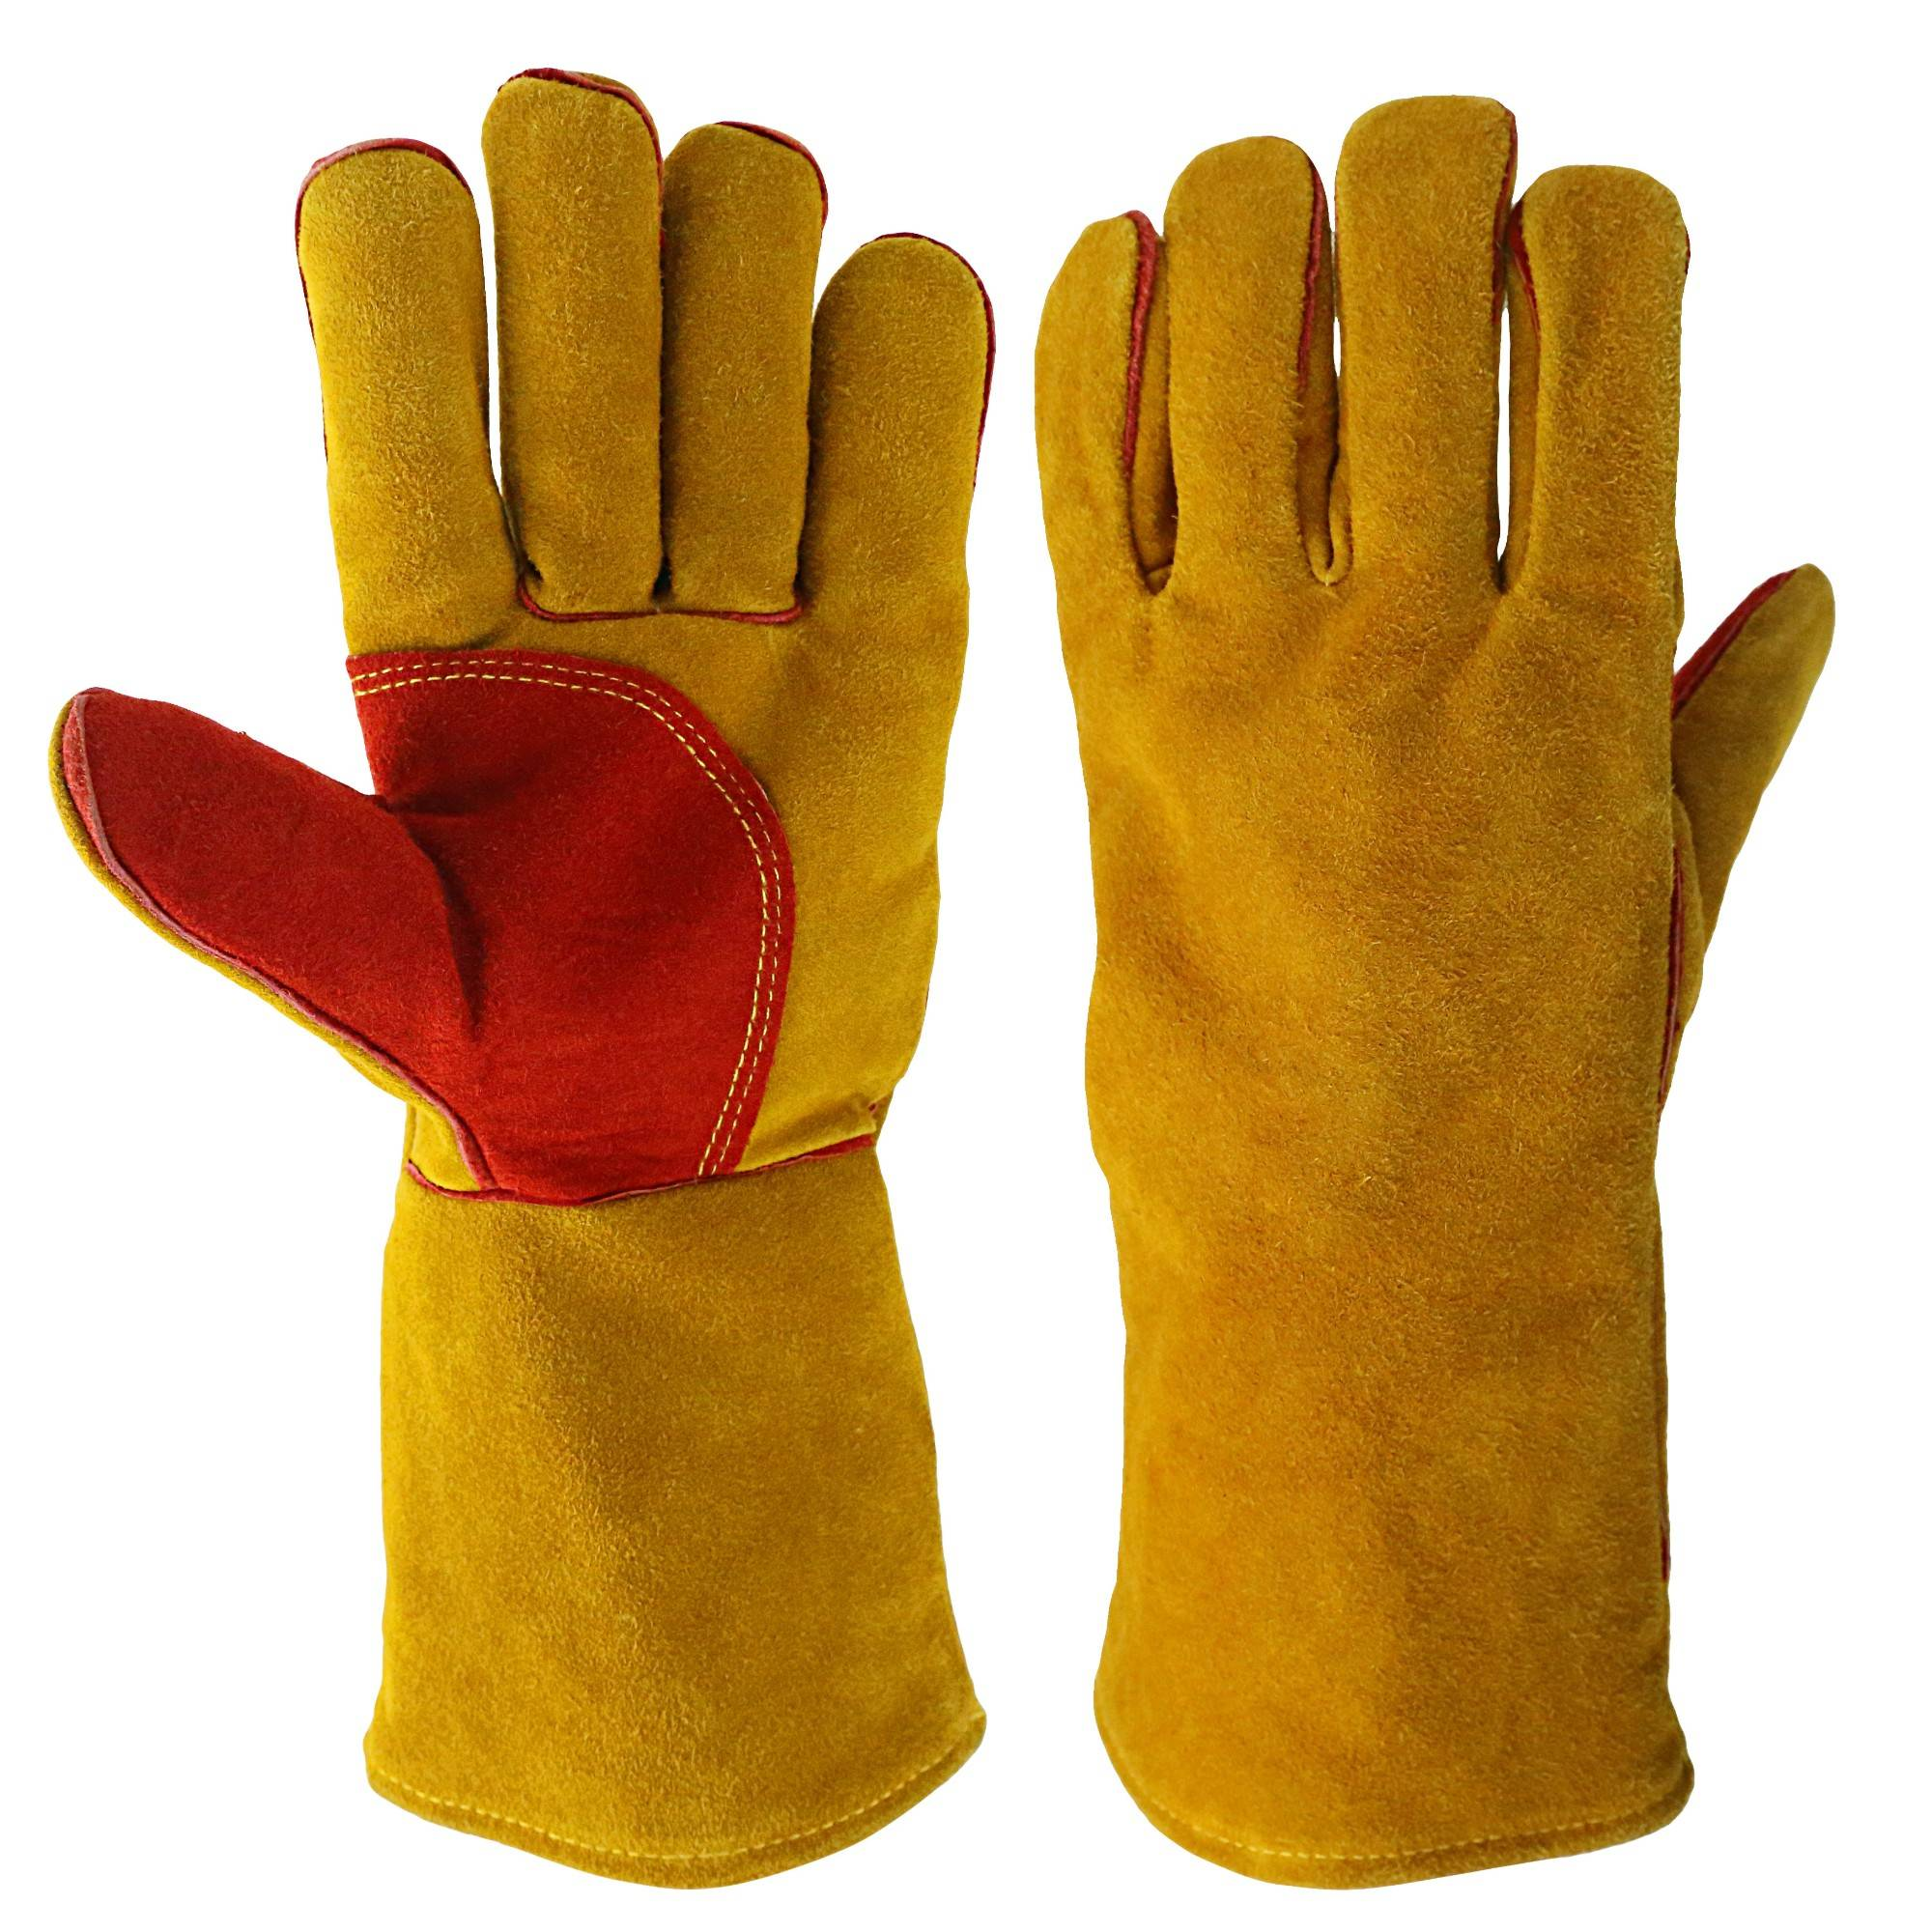 KIM YUAN Welding Gloves Heat Resistant for Welder/Cooking/Baking/Fireplace/Animal Handling/BBQ